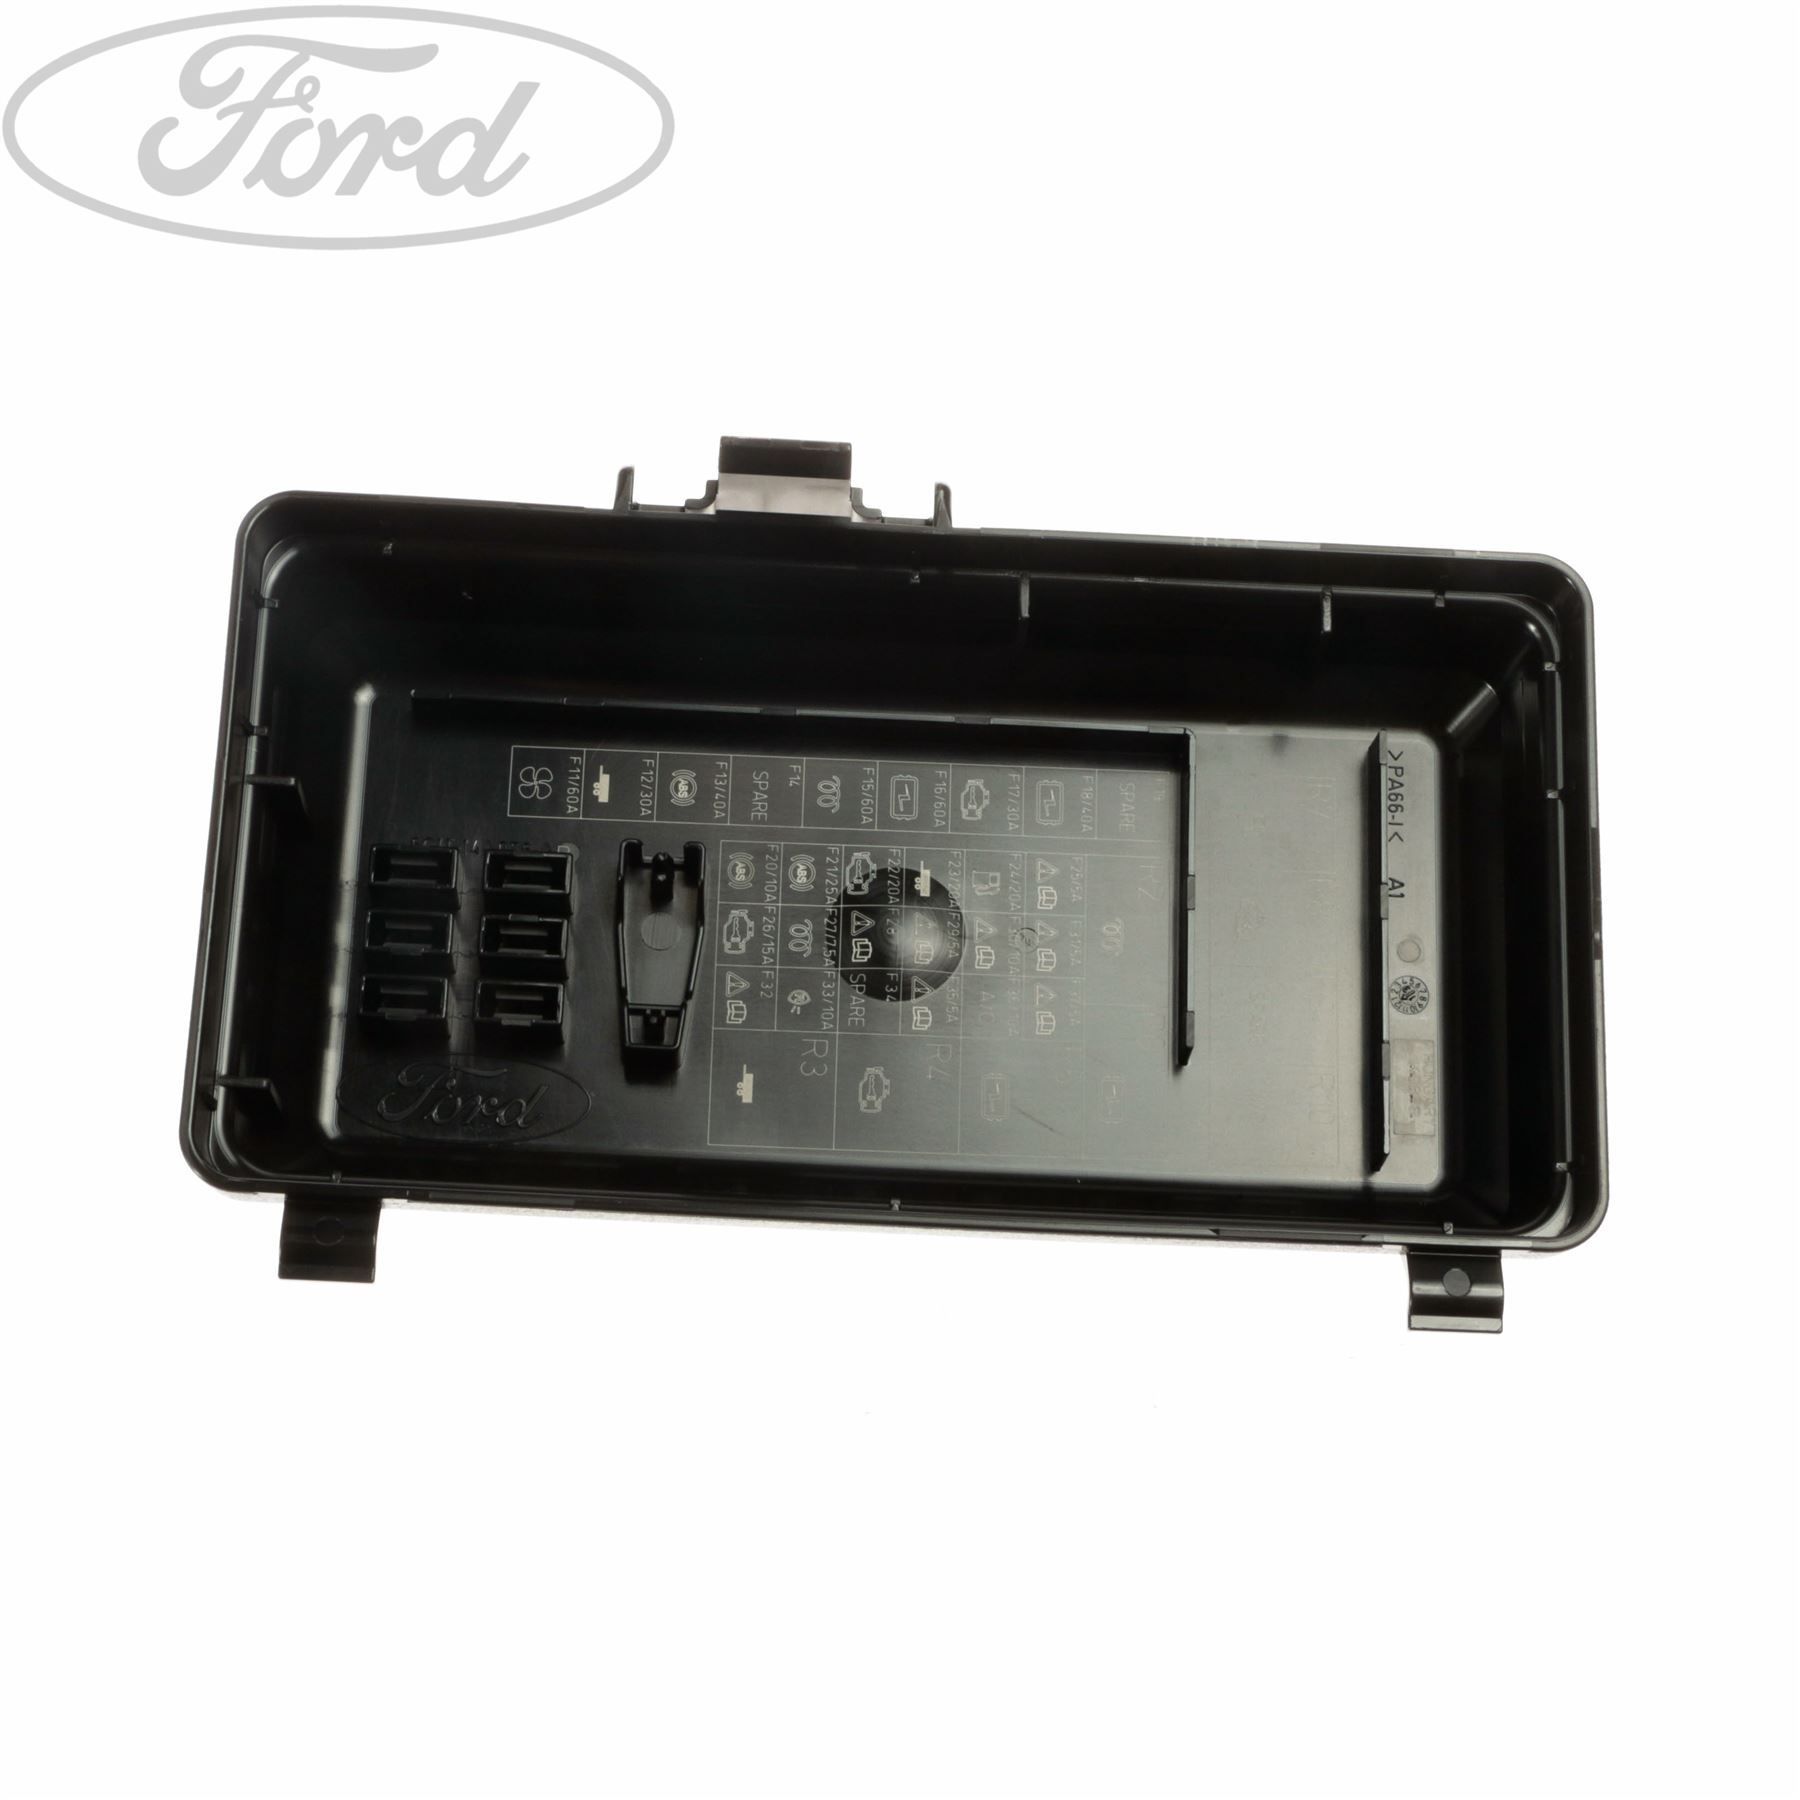 Genuine Ford Transit Mk 7 Additional Fuse Box Cover 1579004 Ebay 92 Saturn